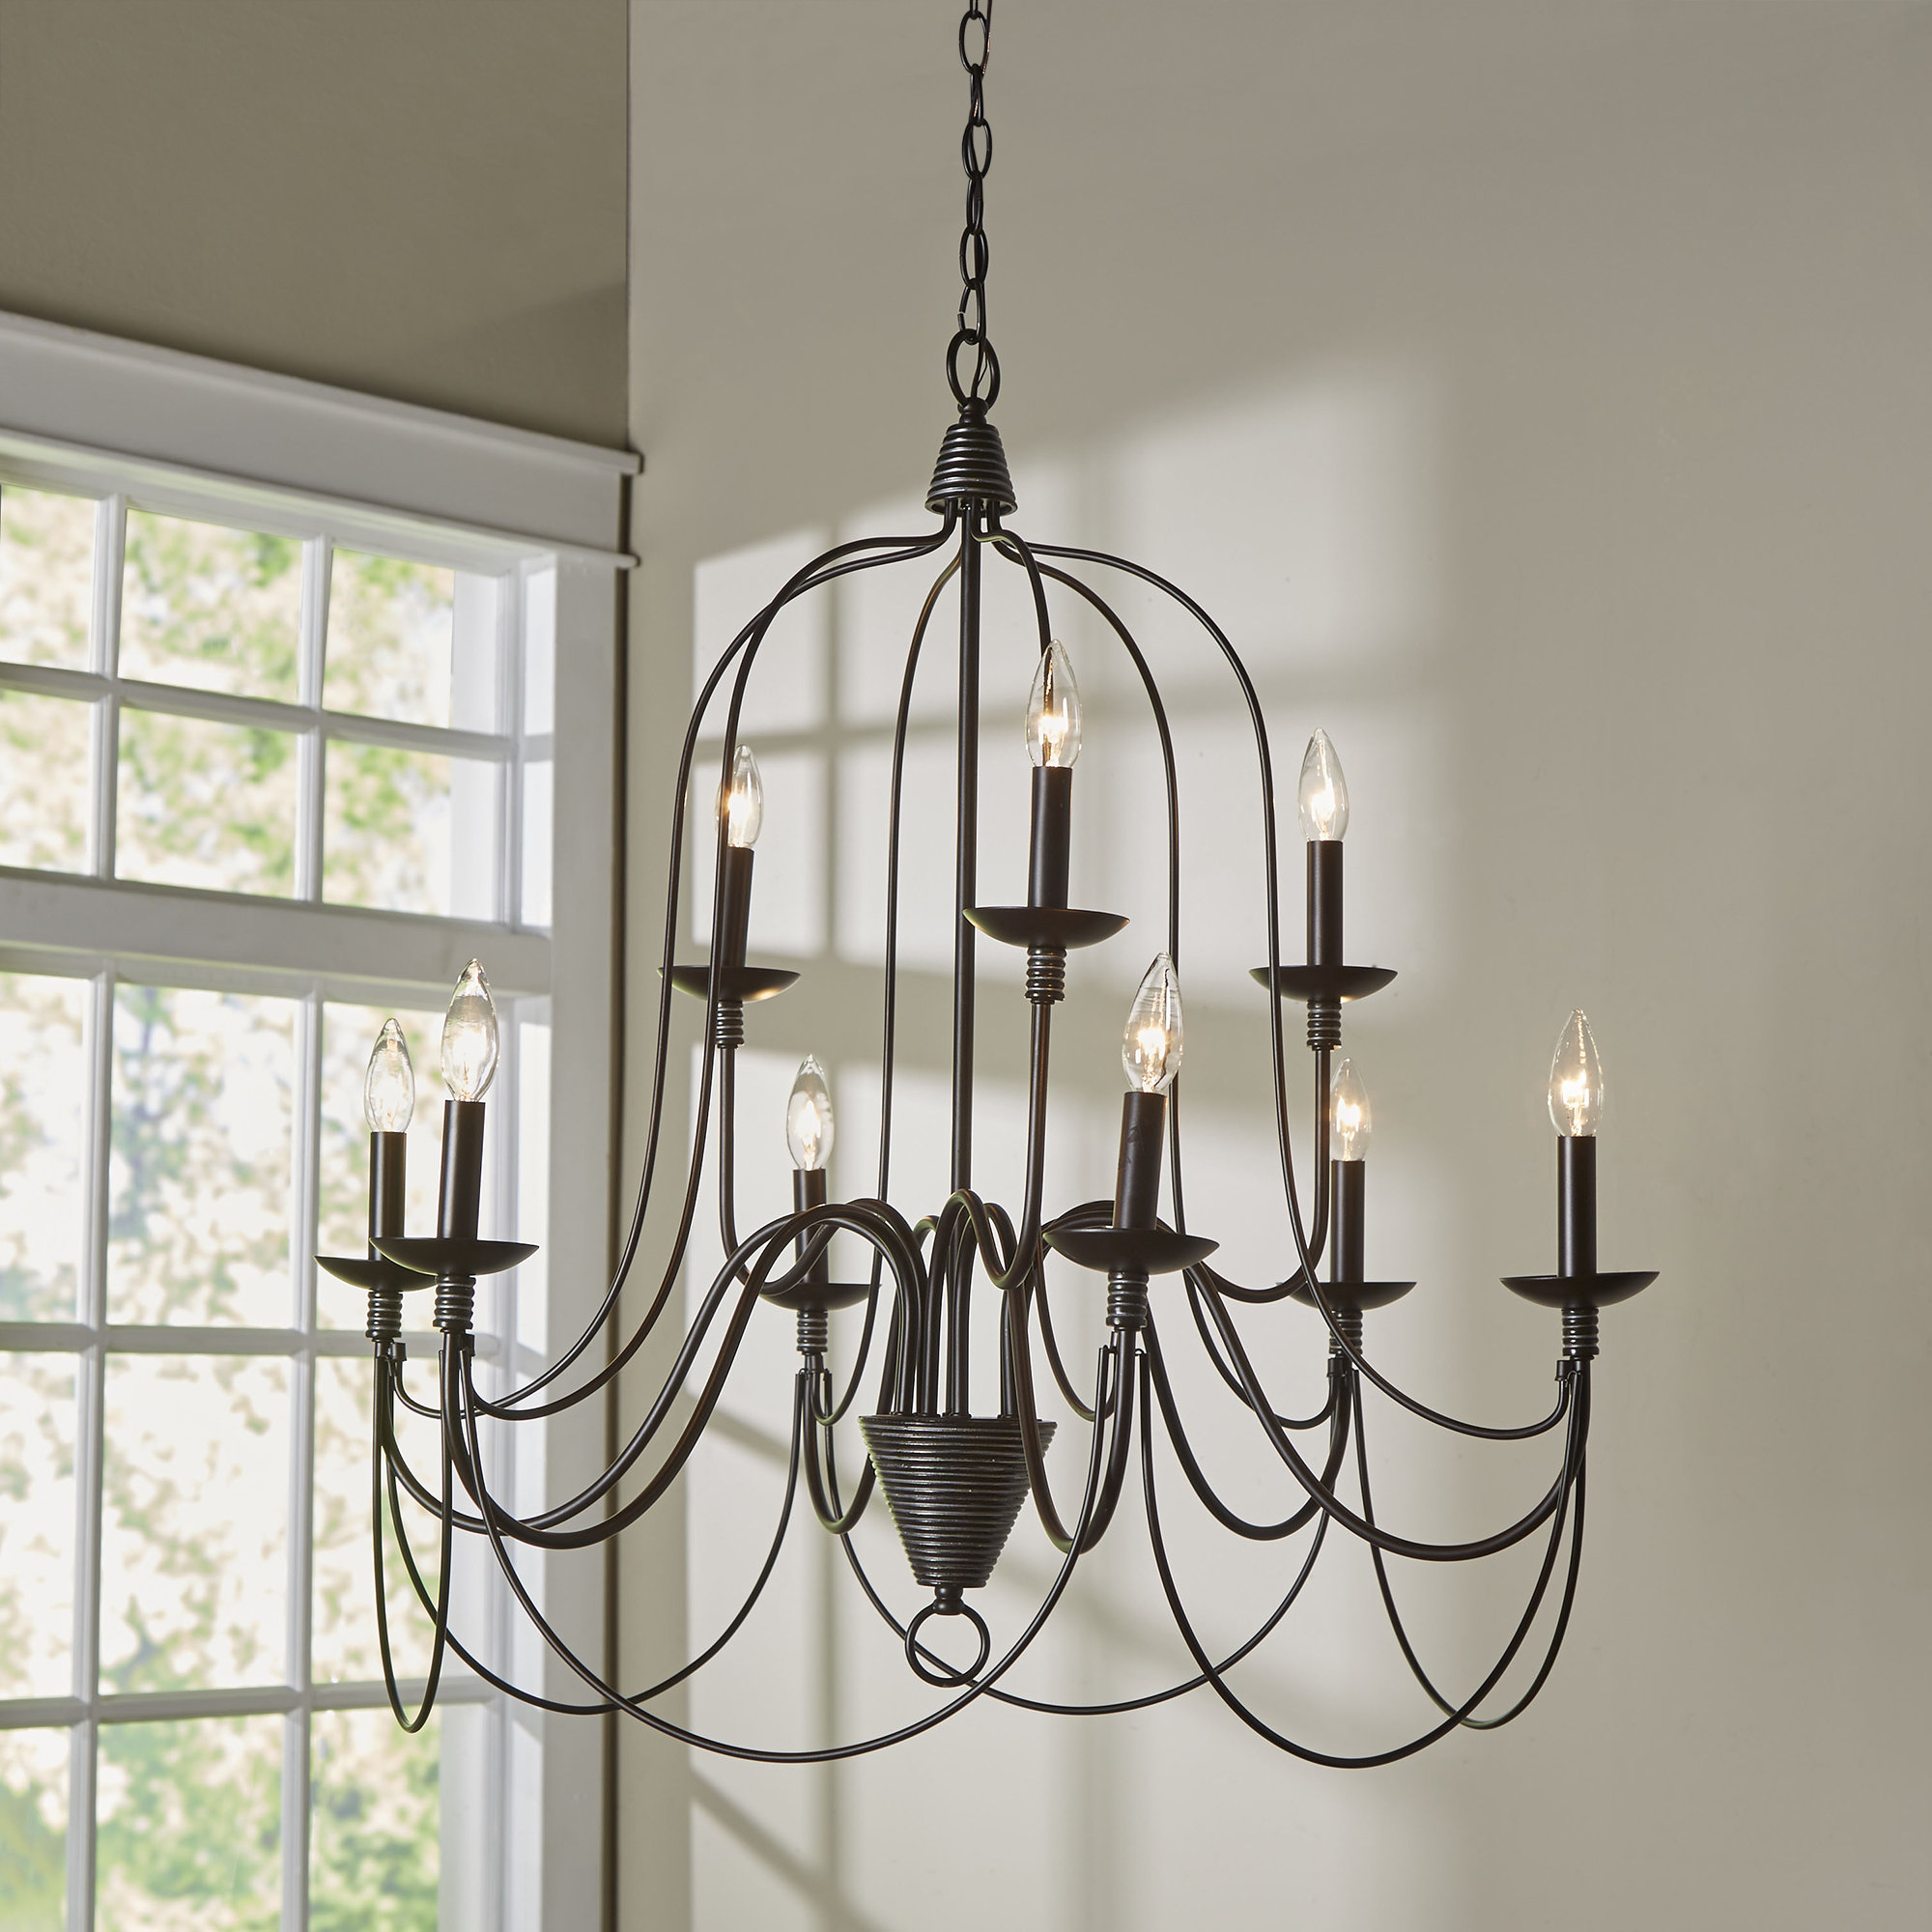 Watford 9 Light Candle Style Chandelier Regarding Bouchette Traditional 6 Light Candle Style Chandeliers (View 13 of 30)